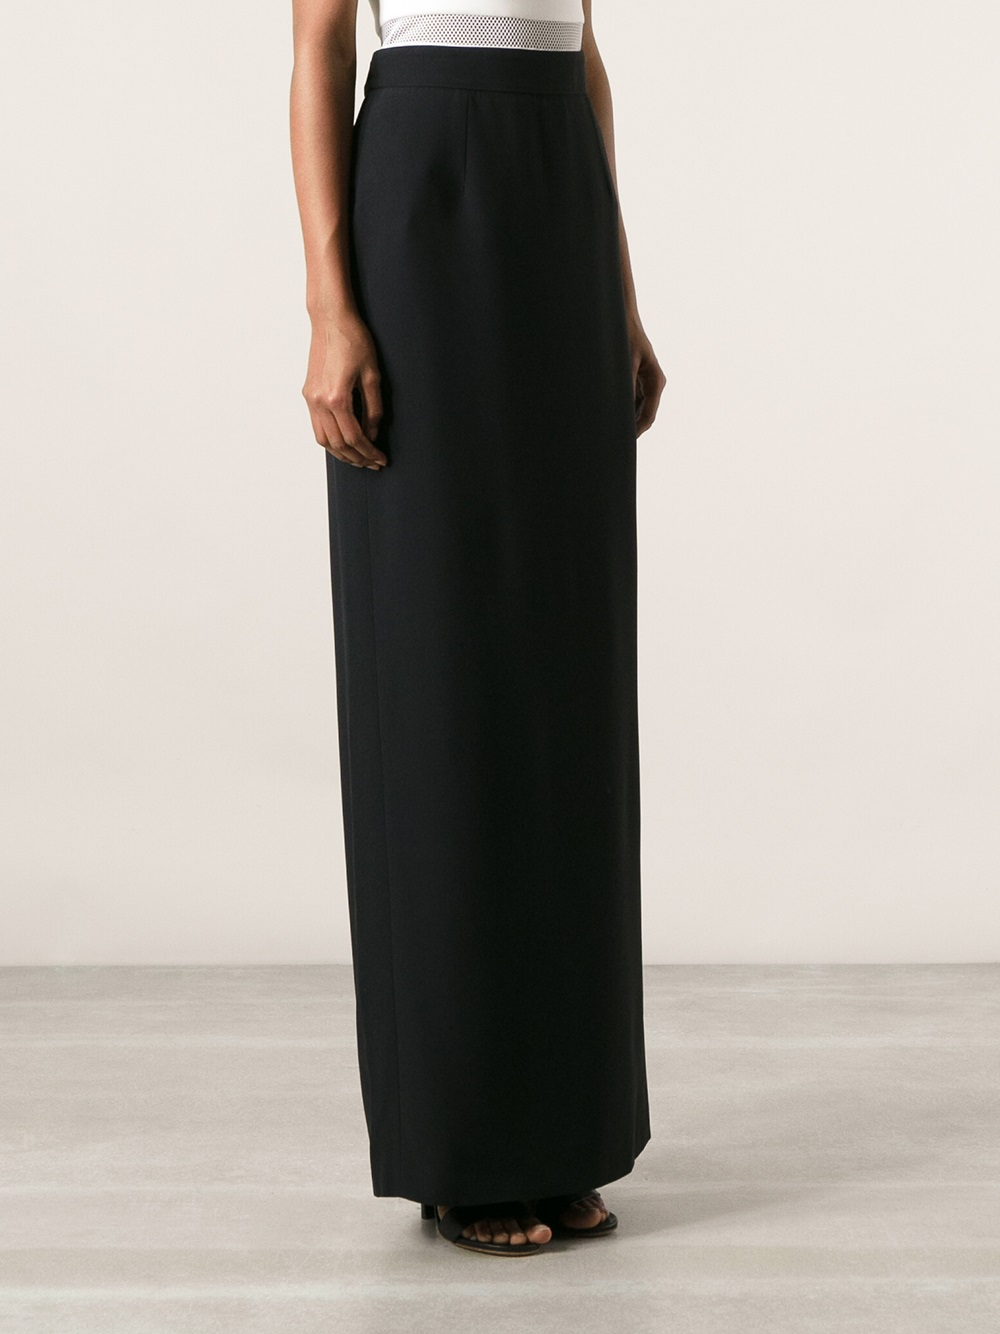 Alexander mcqueen Maxi Pencil Skirt in Black | Lyst